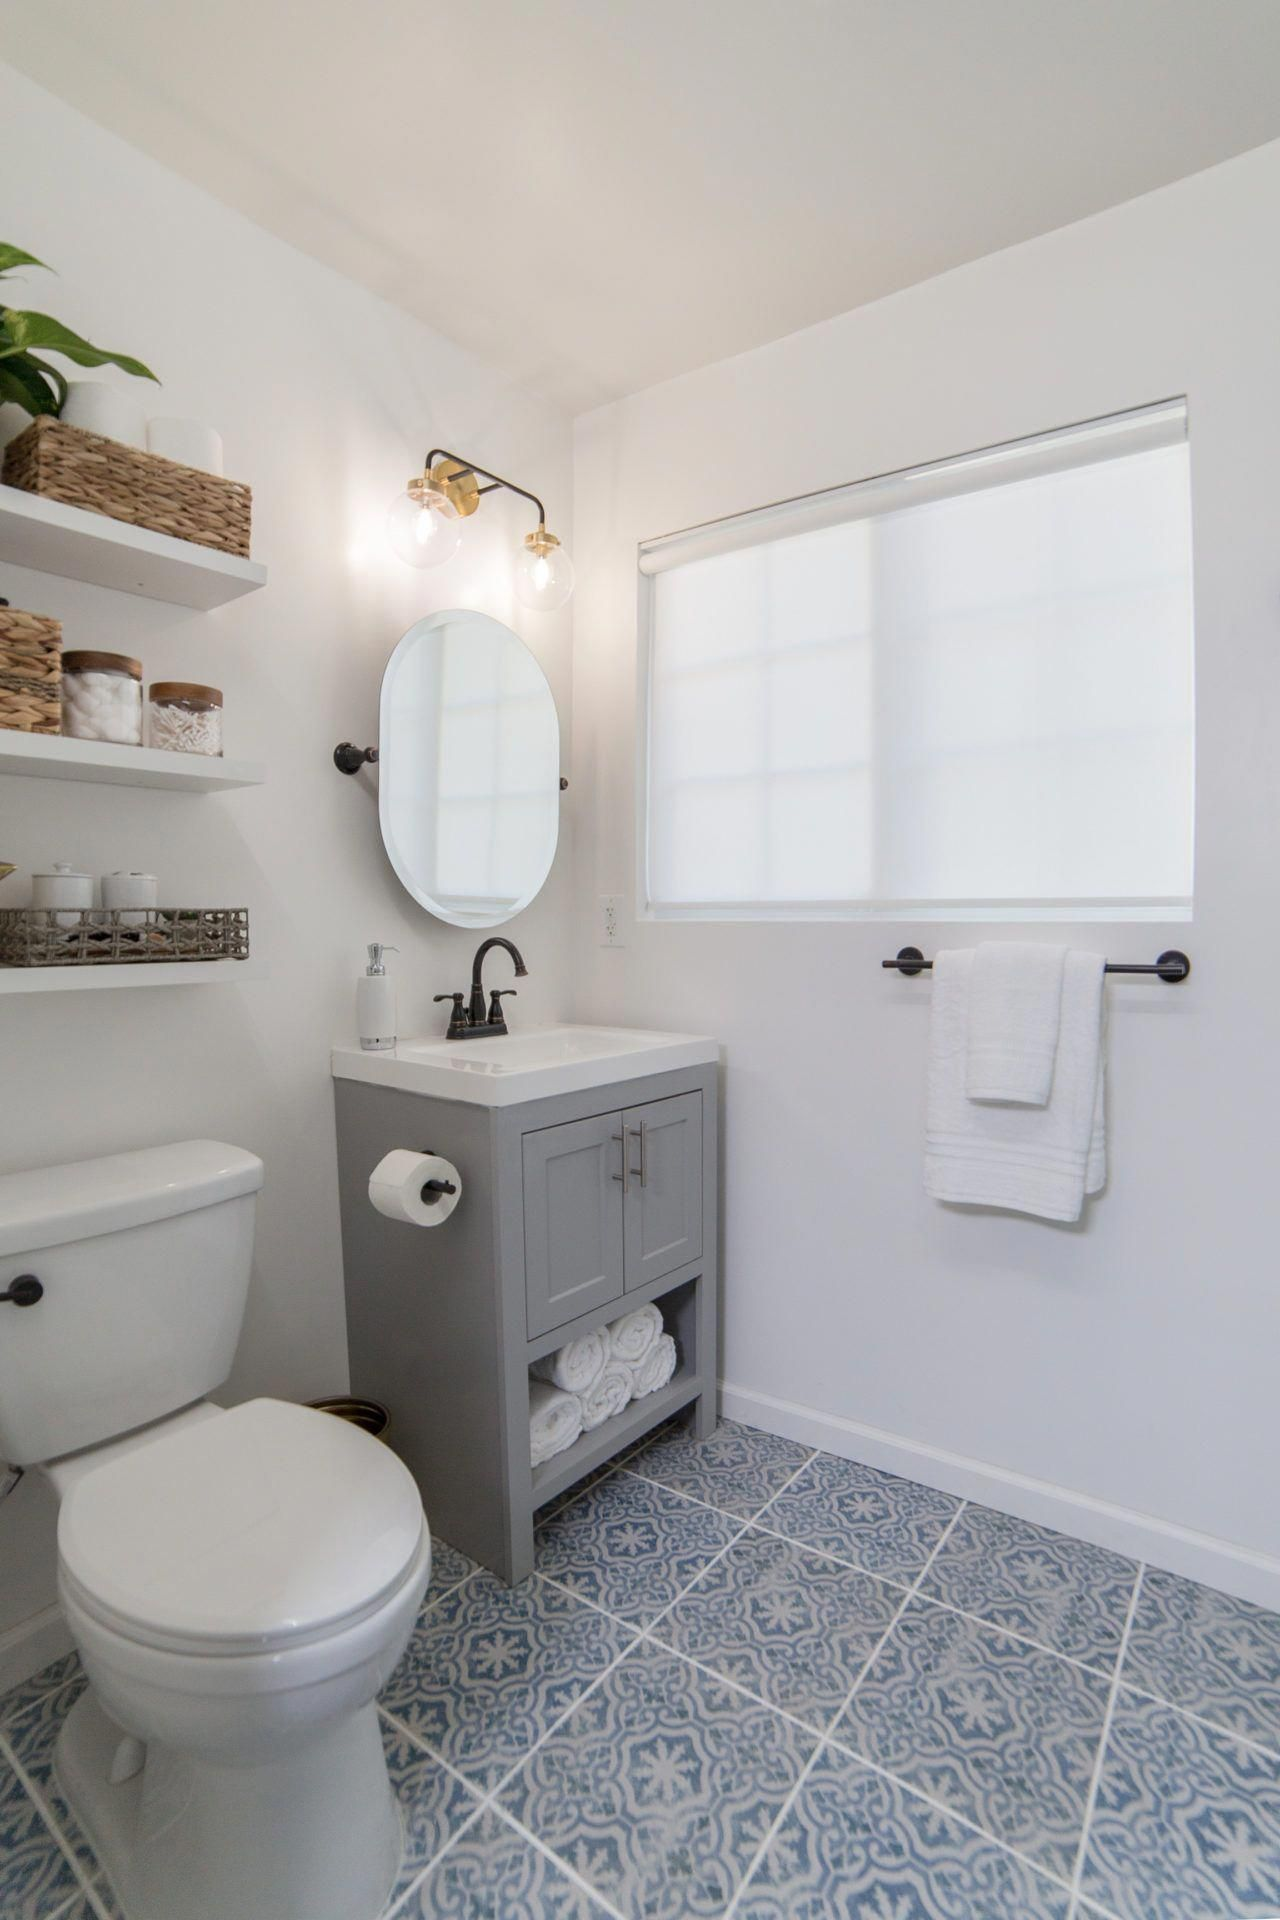 4 Things That Will Help Lower The Cost Of Renovating Bathroom Appearance Jessi S Home Decor Master Bathroom Renovation Bathroom Renovation Diy Traditional Bathroom